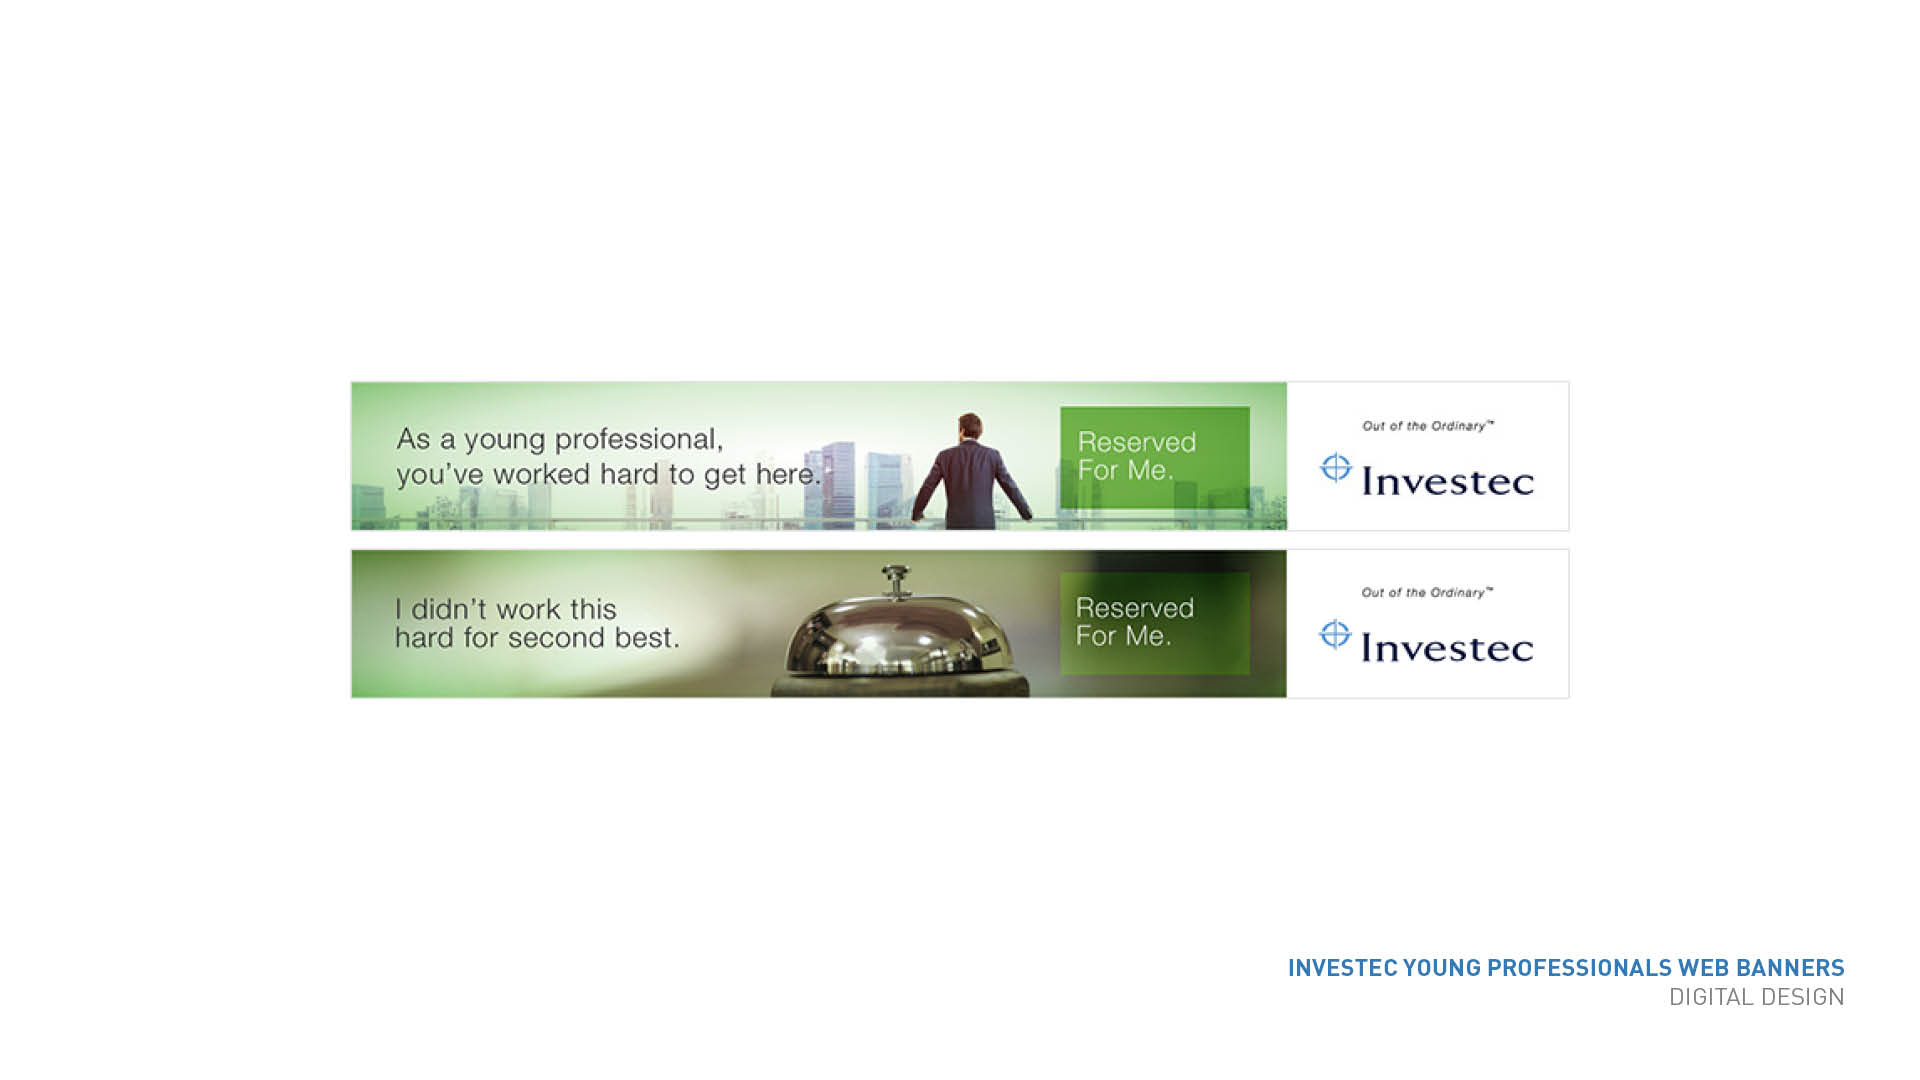 Investec Young Professionals web banners